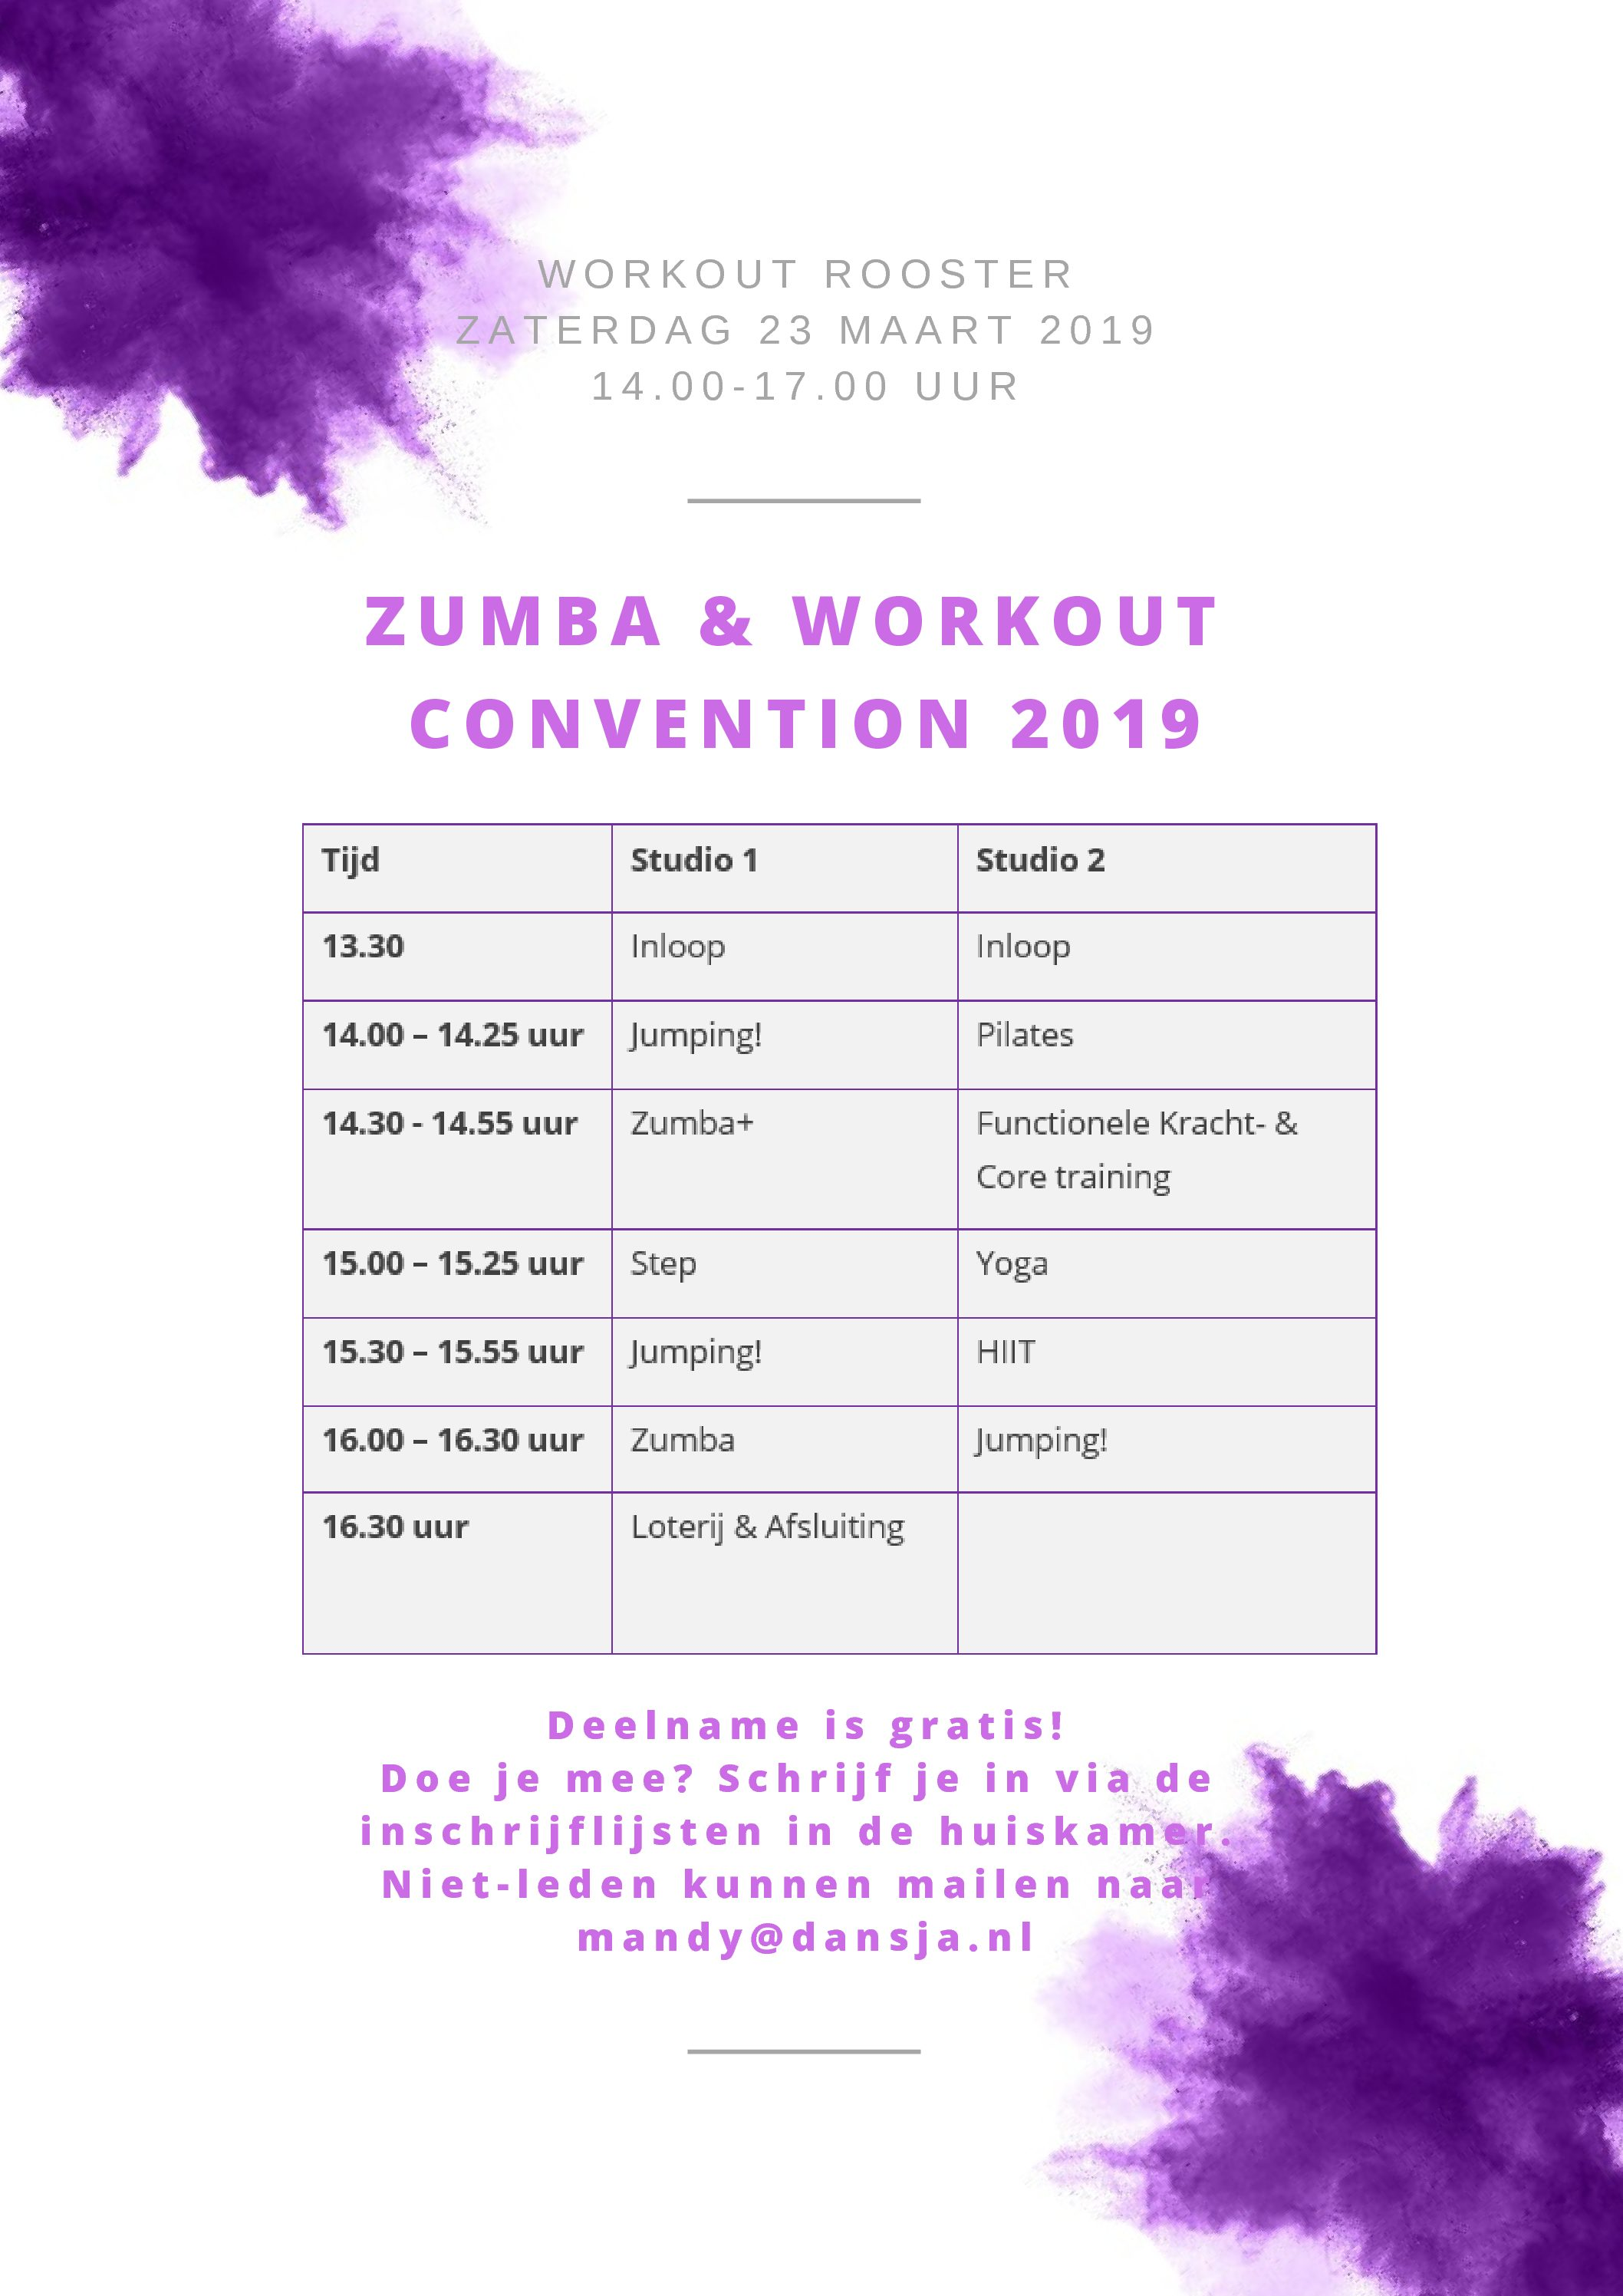 Zumba & Workout Convention 2019